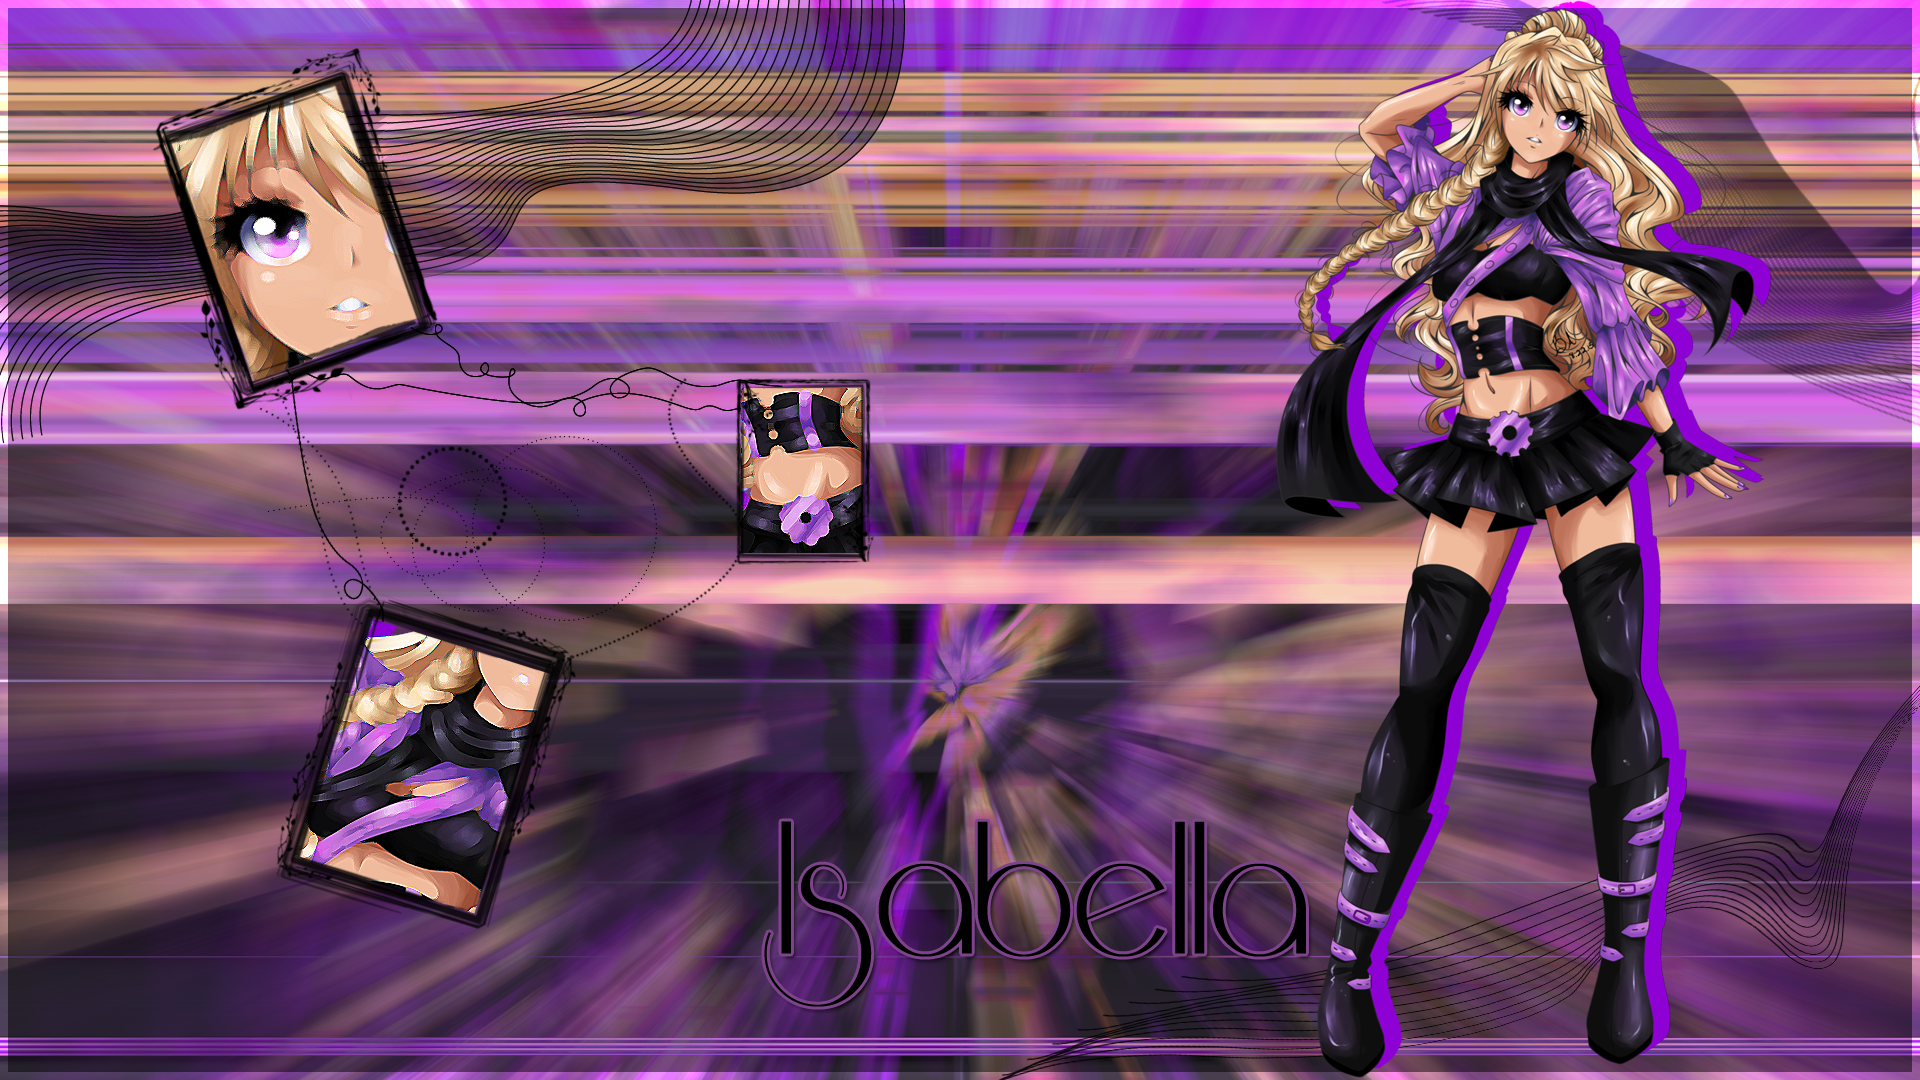 Gift: Isabella Wallpaper by AinoWallen